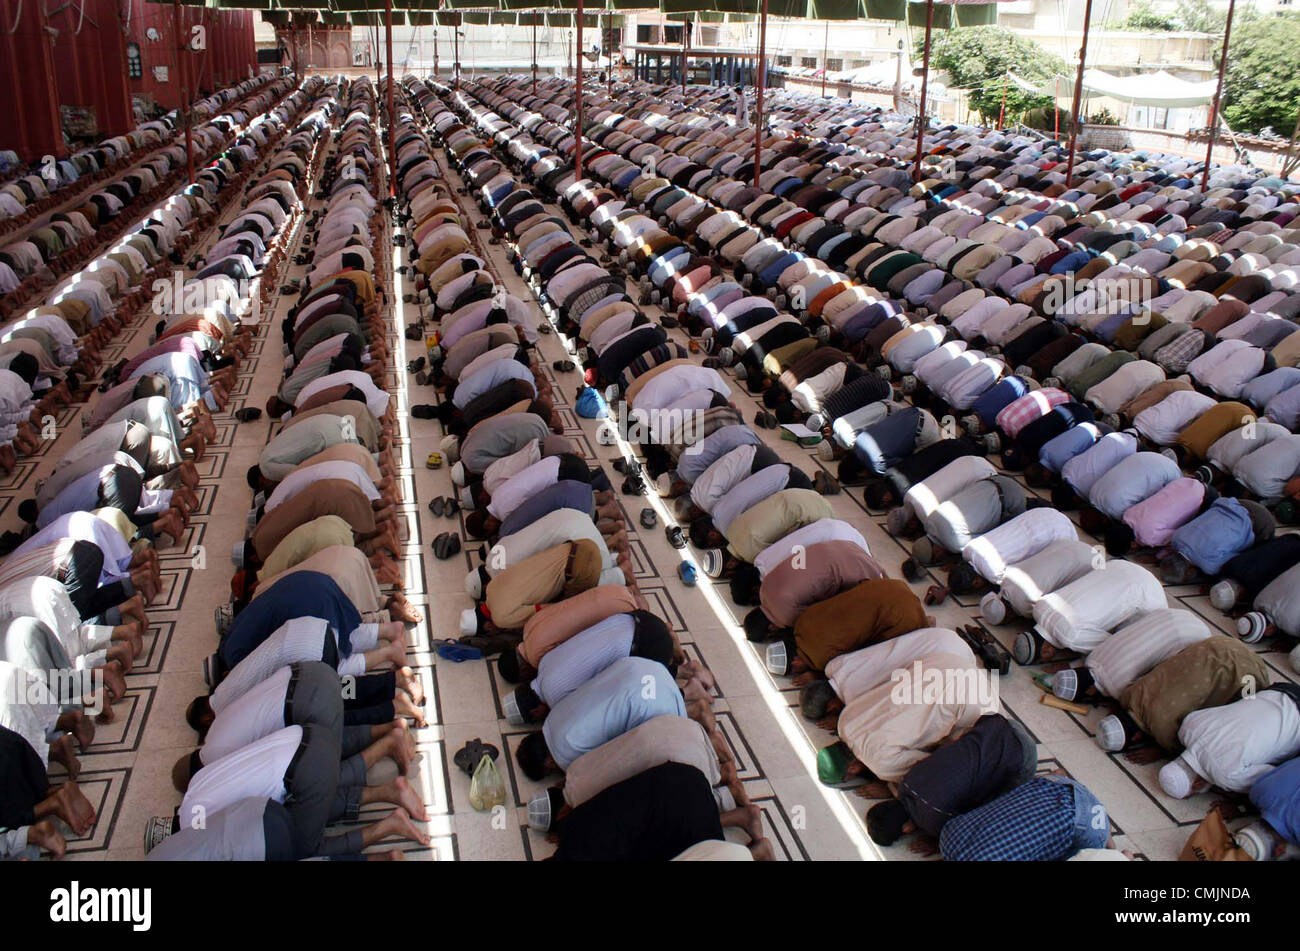 Faithful Muslims Offer Friday Prayer At A Memon Mosque During The Last Of Holy Month Ramazan Ul Mubarak In Karachi On FridayAugust 17